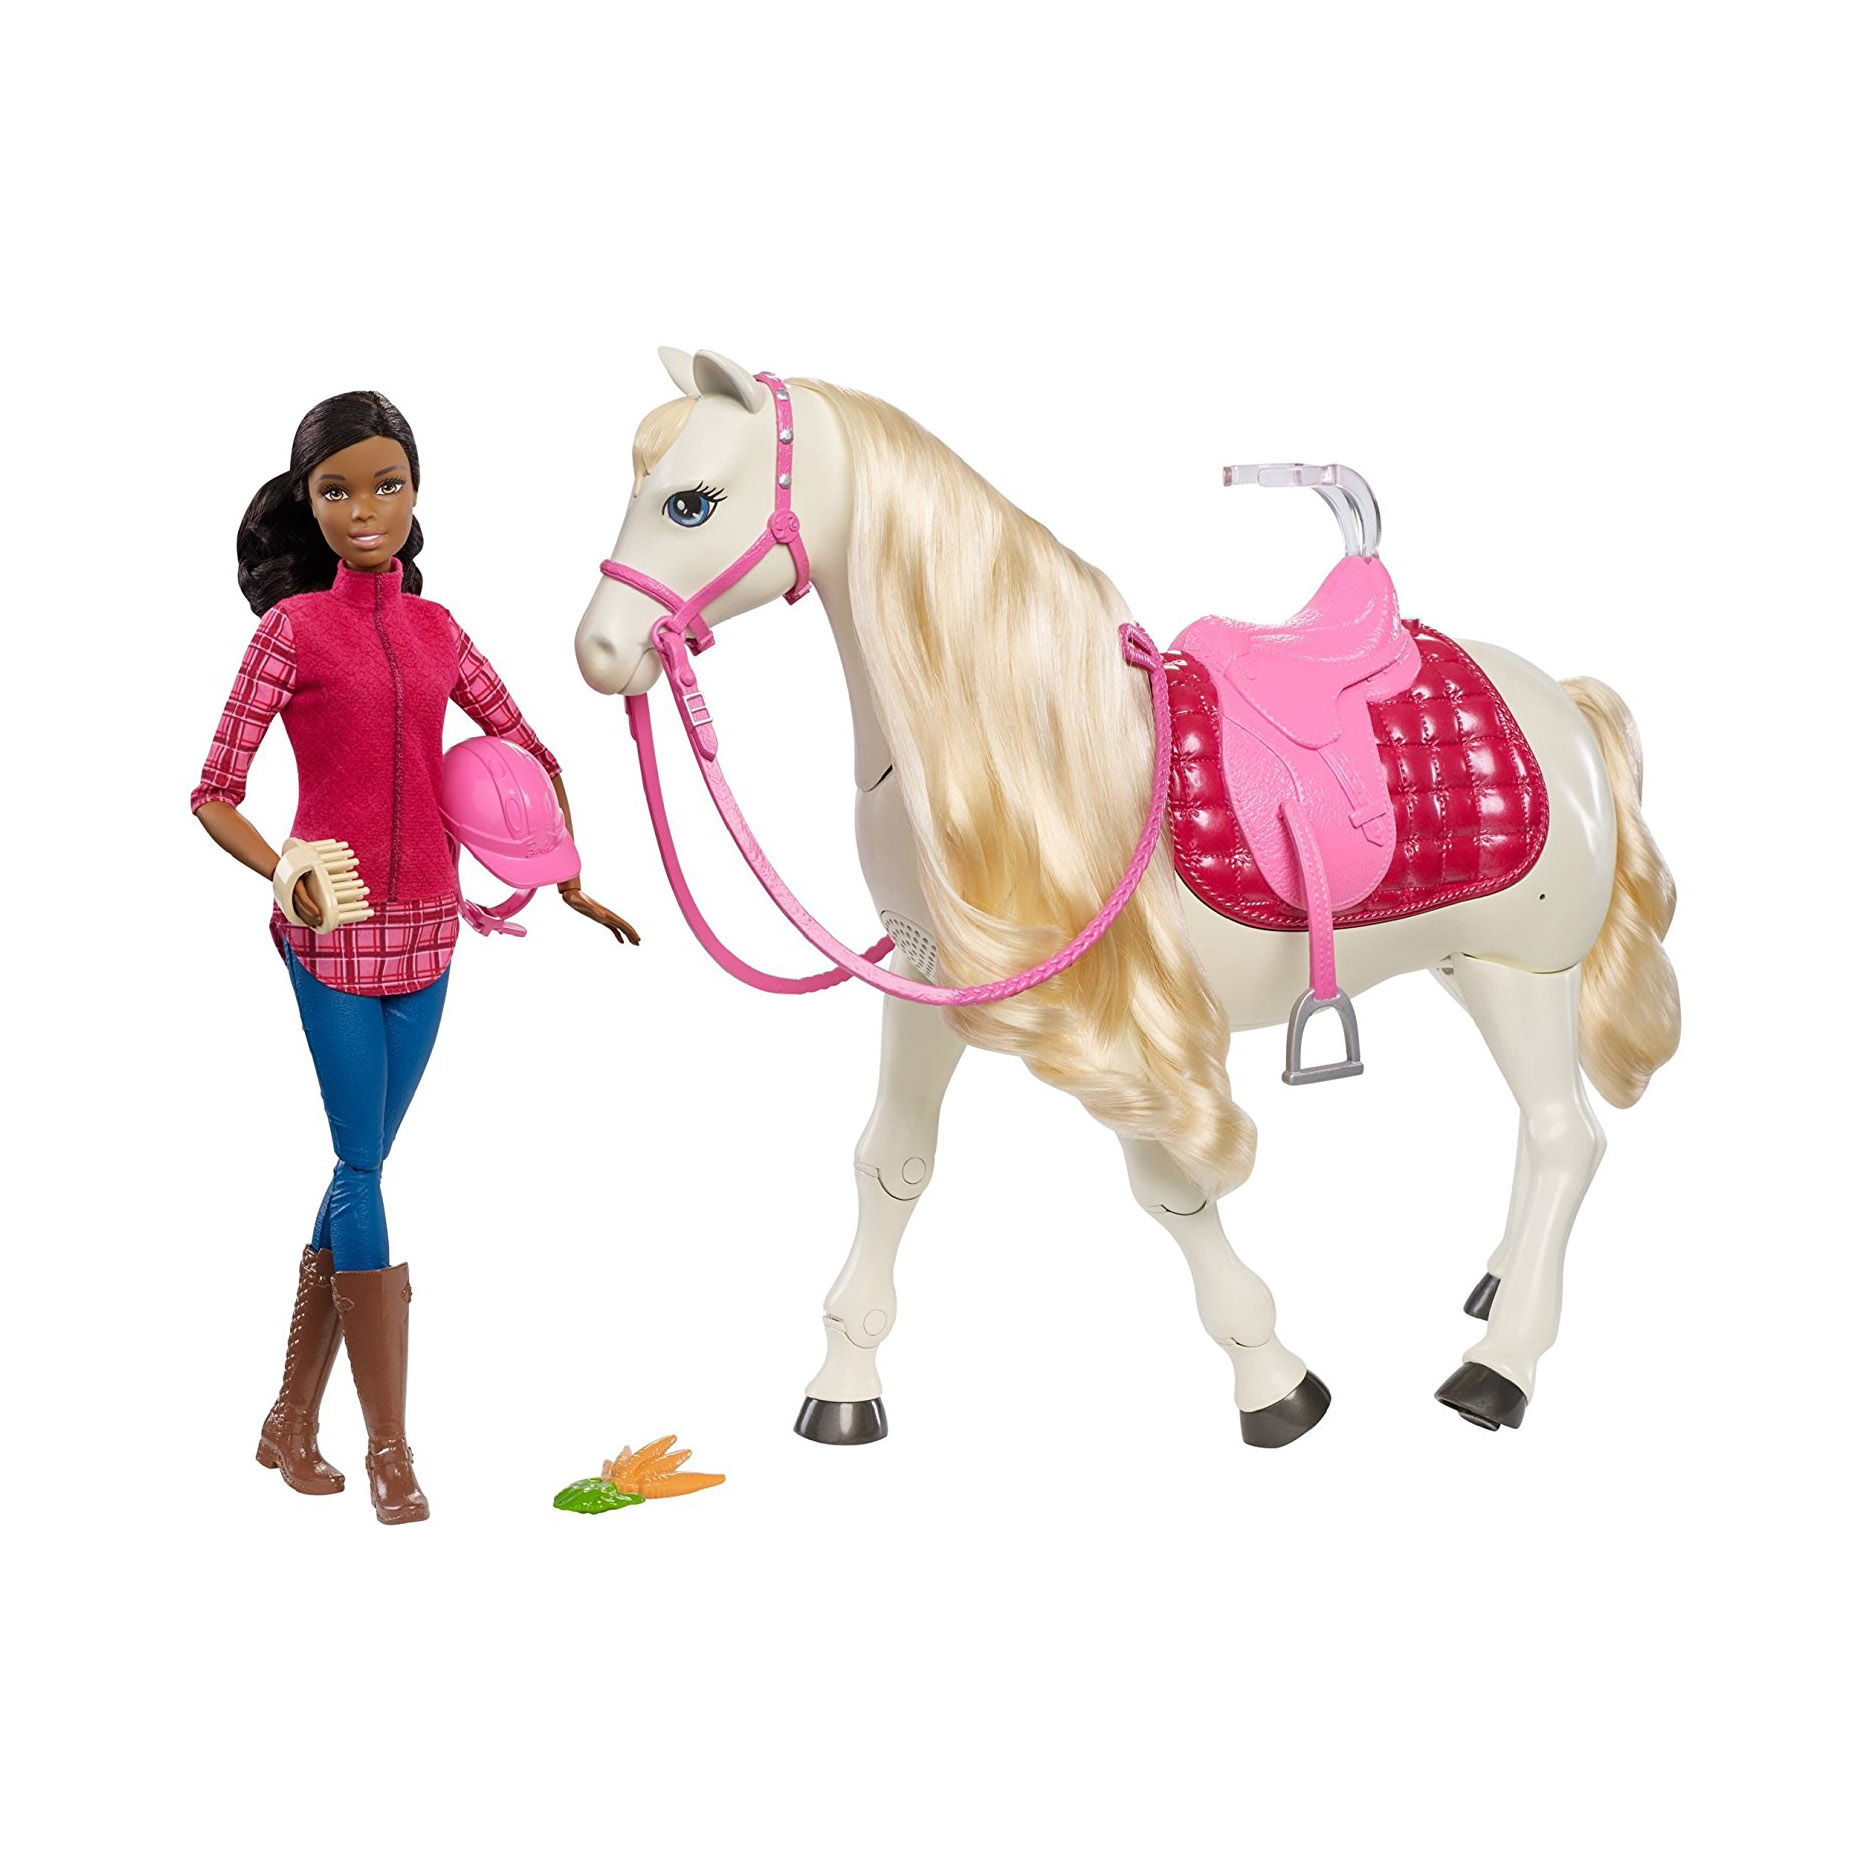 Barbie DreamHorse and Doll